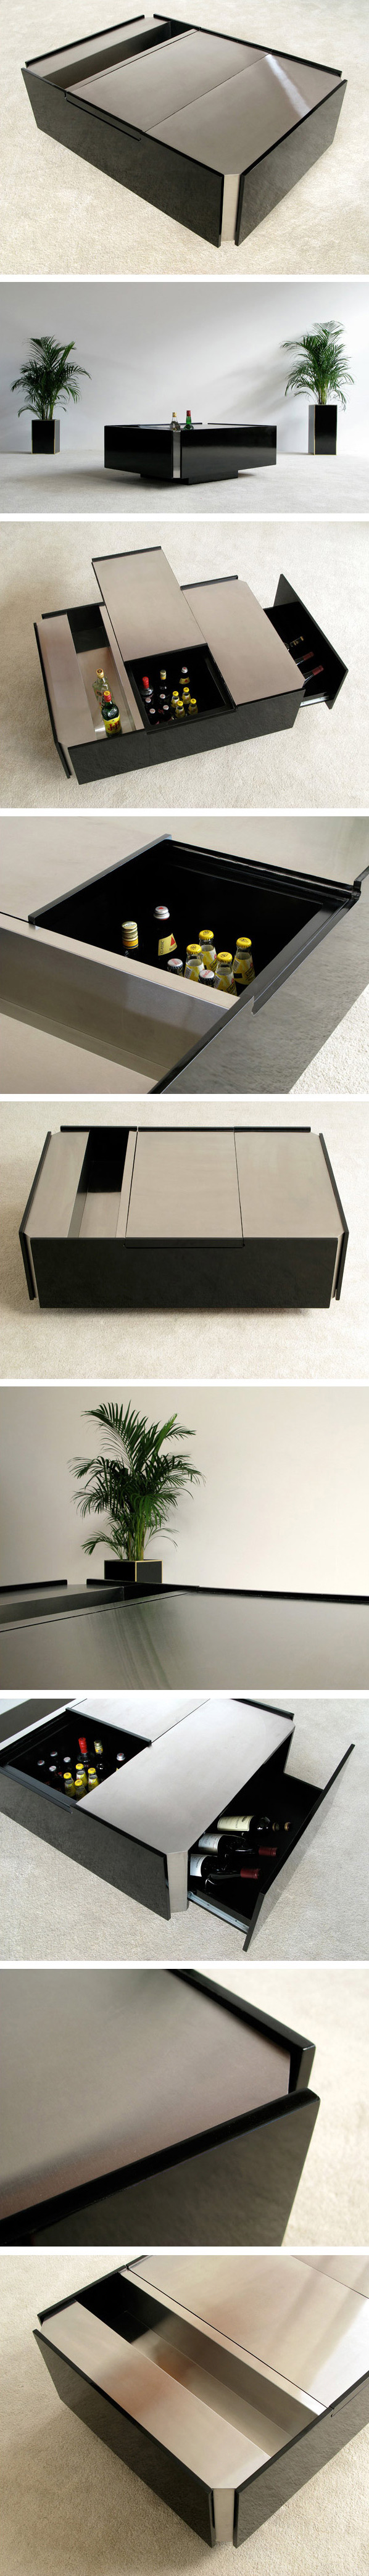 Stainless steel coffee table with fridge circa 70 Large